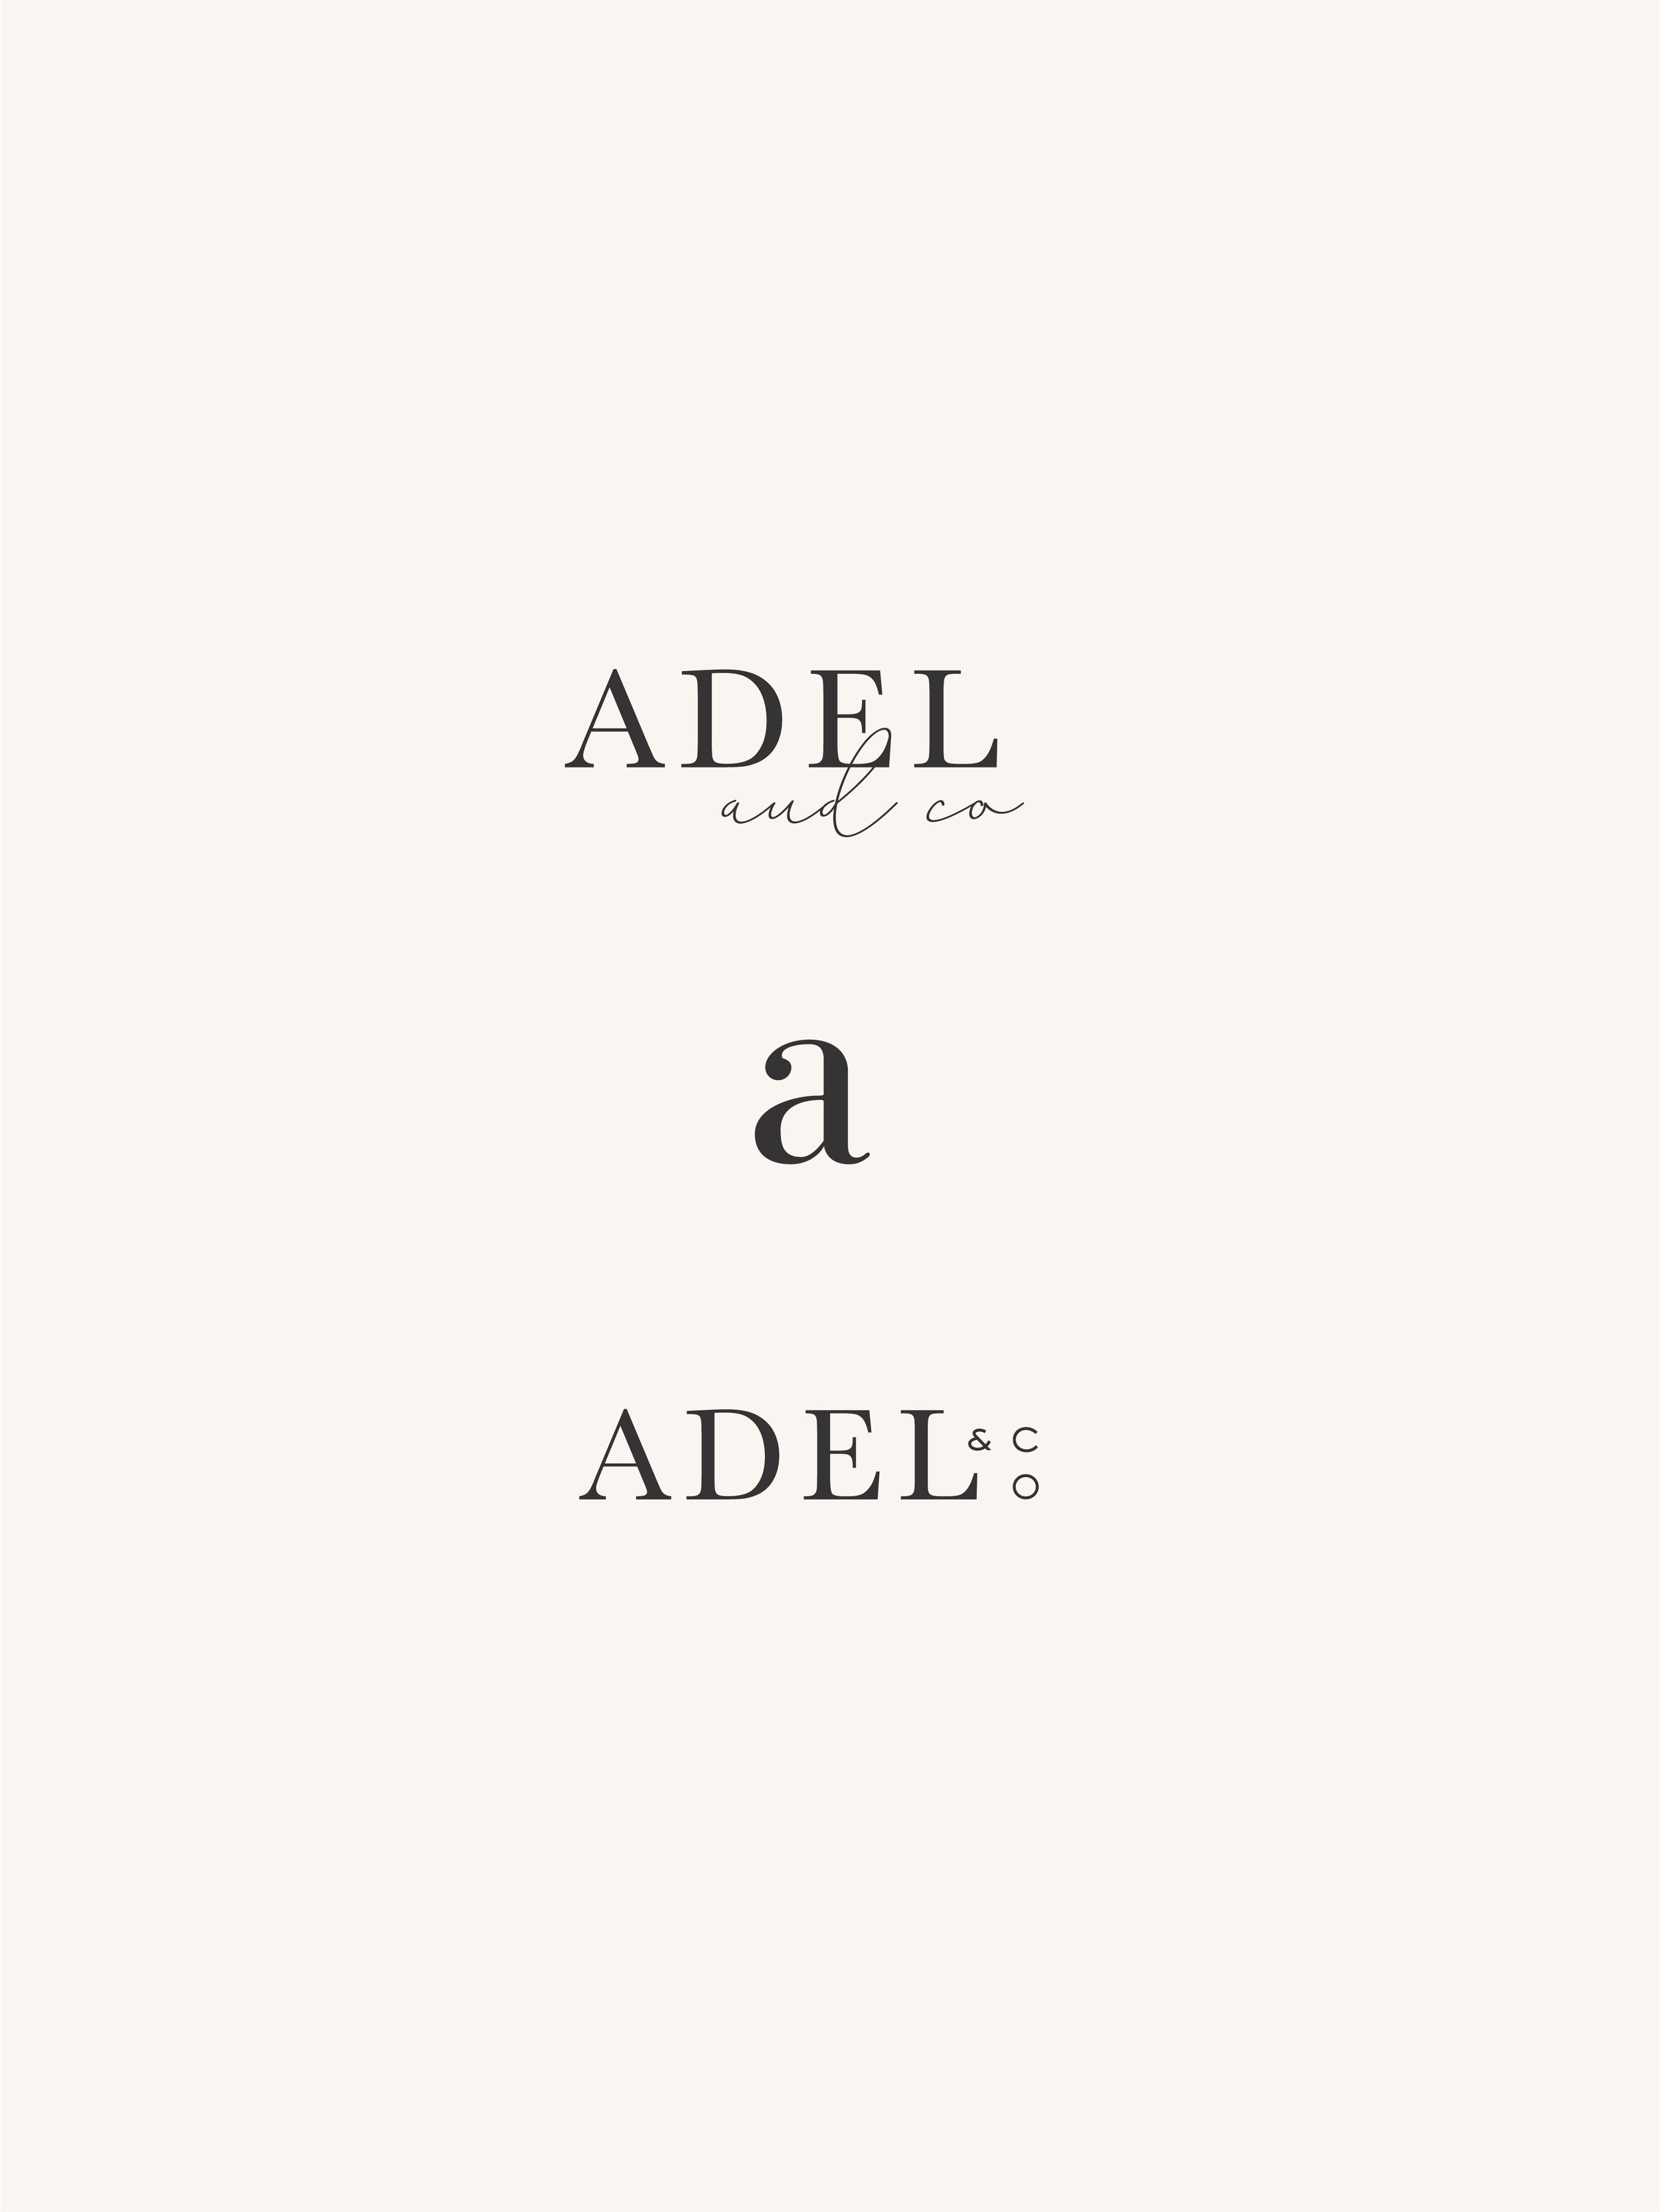 Adel & Co brand elements - by January Made Design